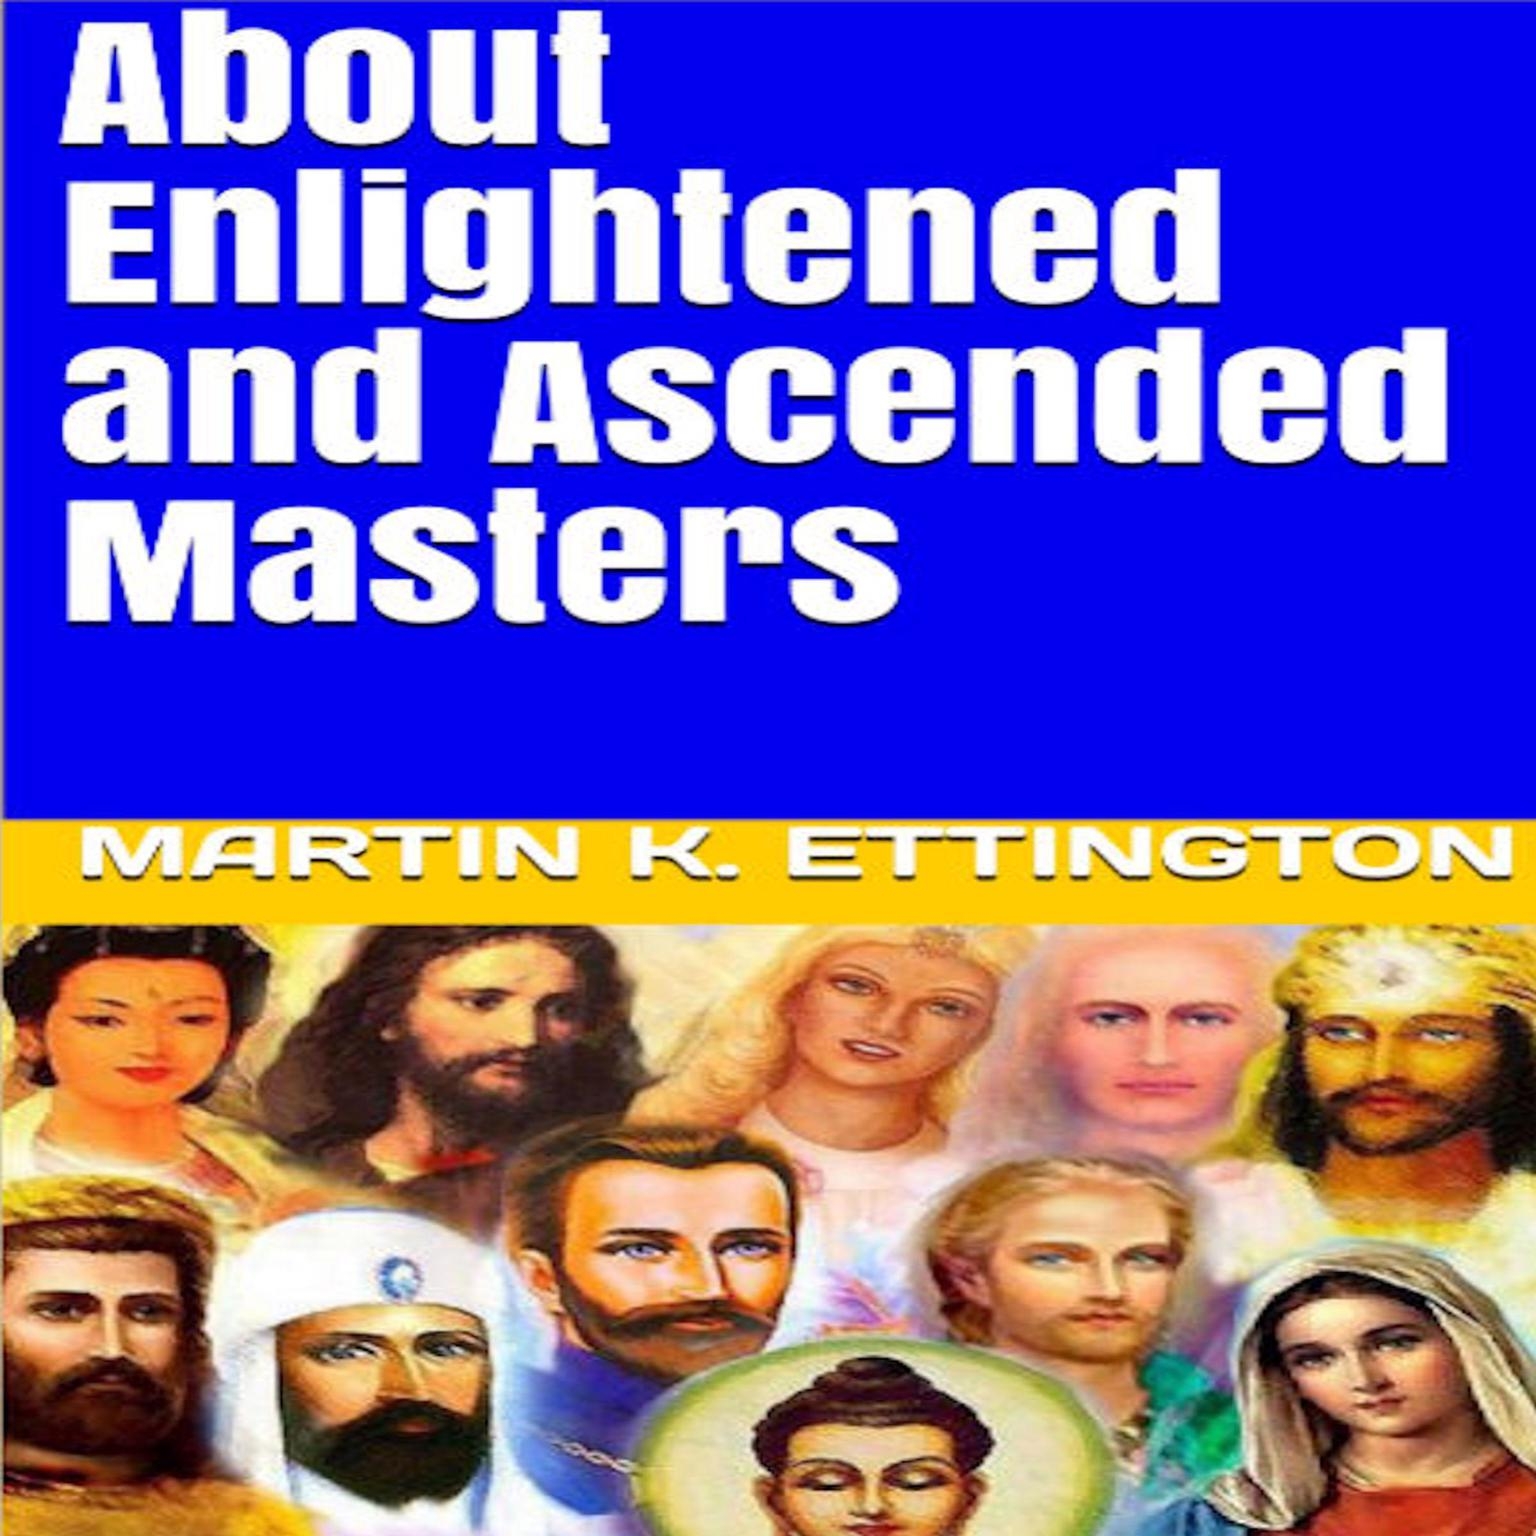 About Enlightened and Ascended Masters Audiobook, by Martin K. Ettington